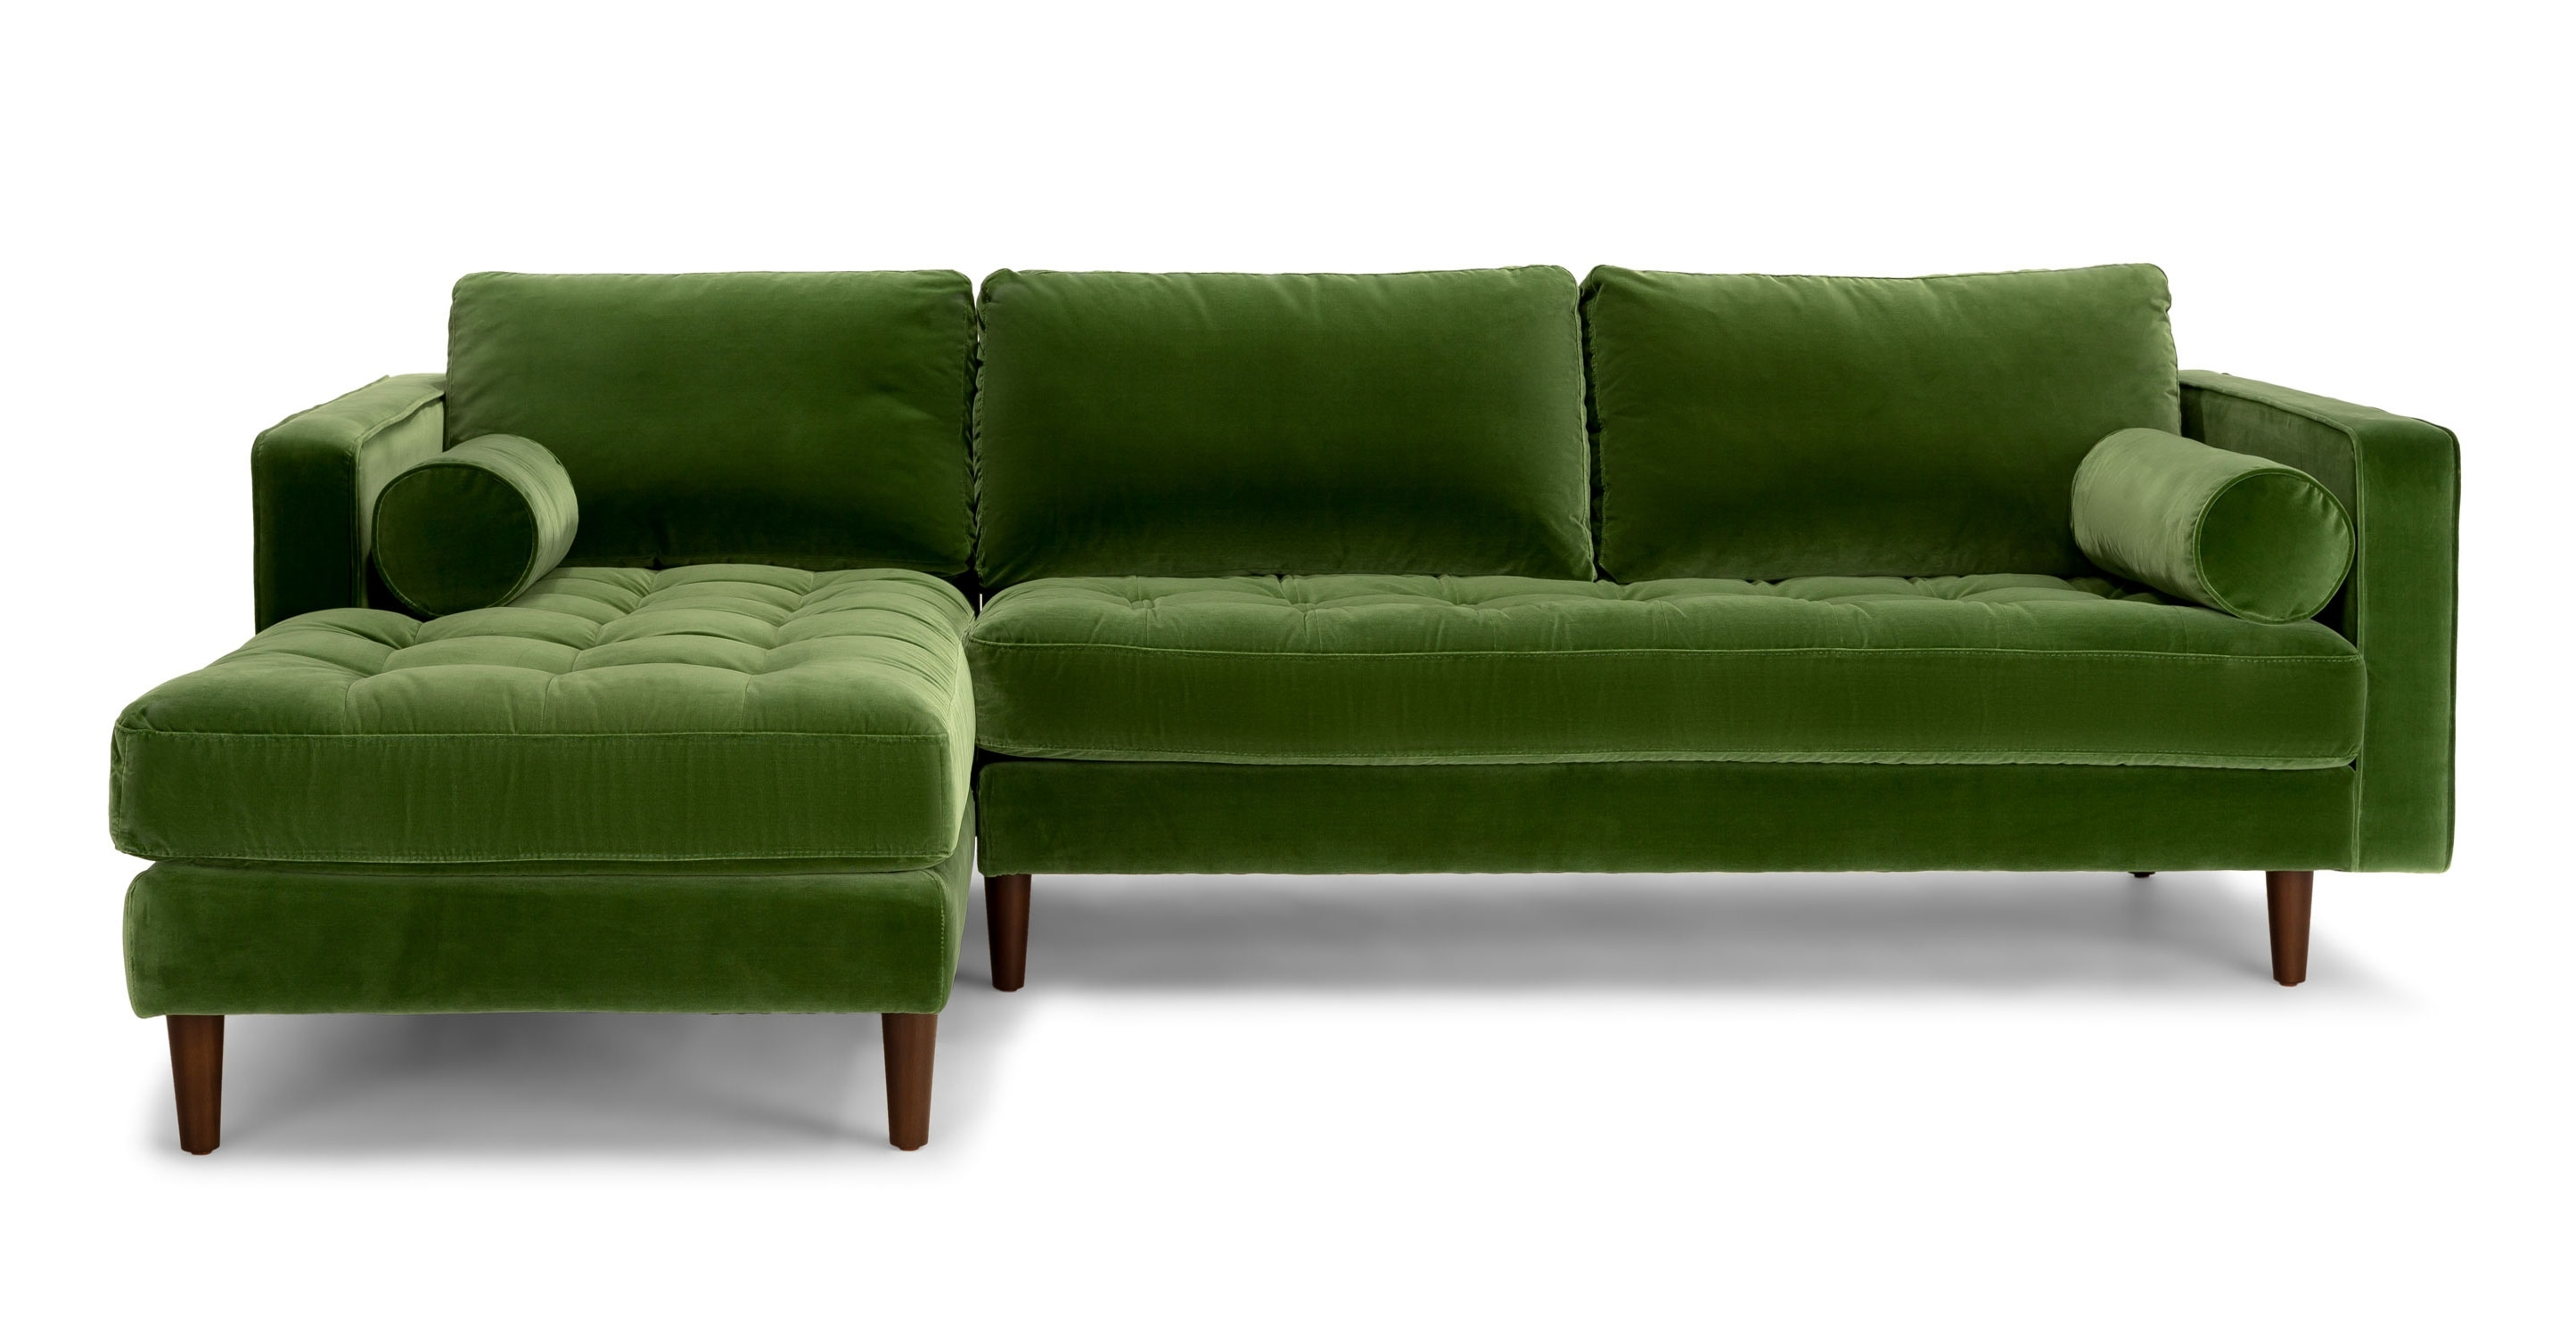 Green Sectional Sofa With Chaise – Hotelsbacau For Green Sectional Sofas With Chaise (Image 7 of 10)